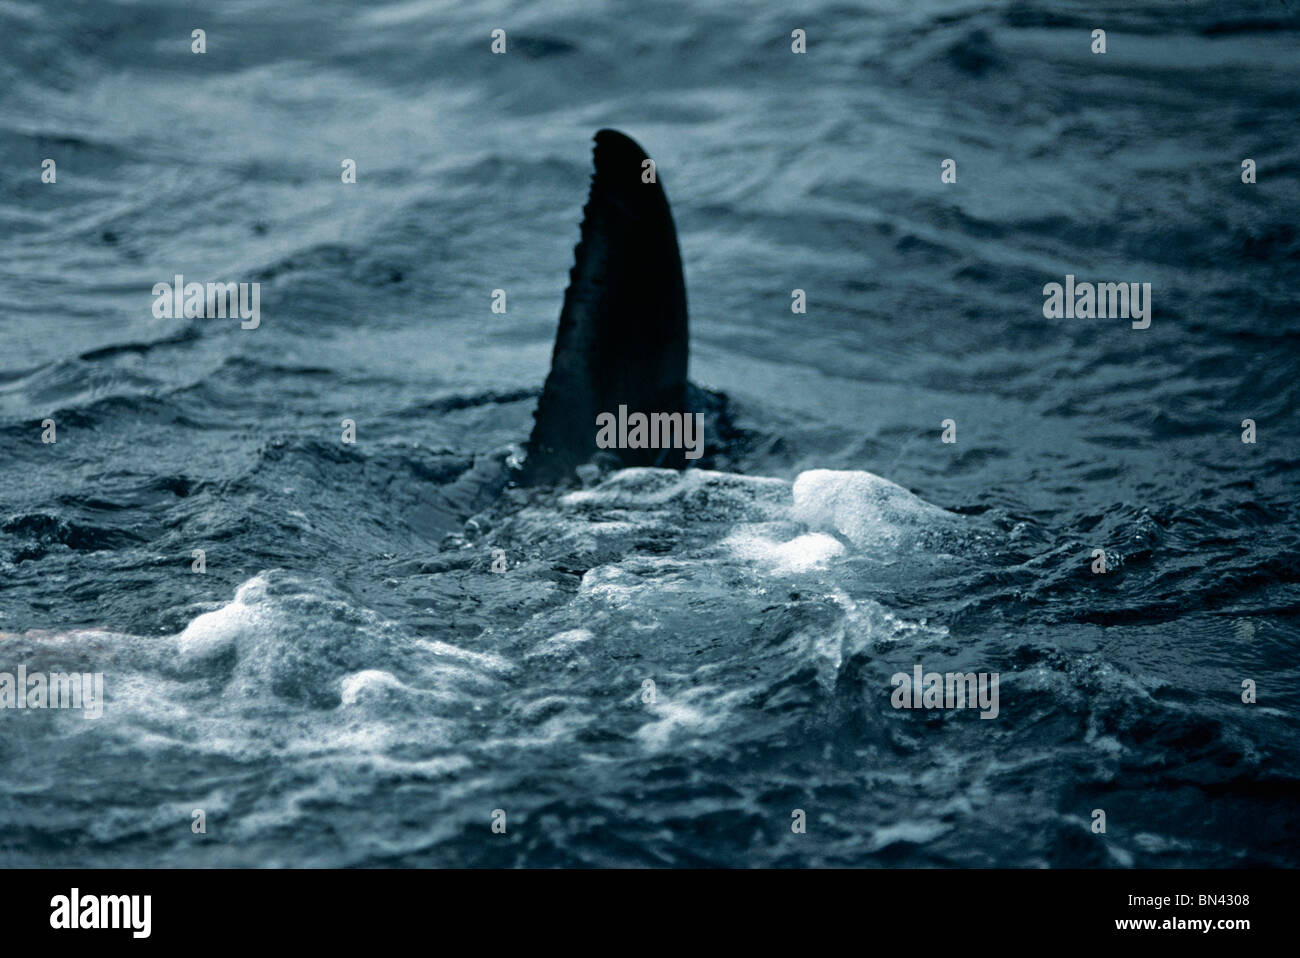 Dorsal fin of Great White Shark (Carcharodon carcharias) breaking the surface, Dangerous Reef, South Australia - Stock Image